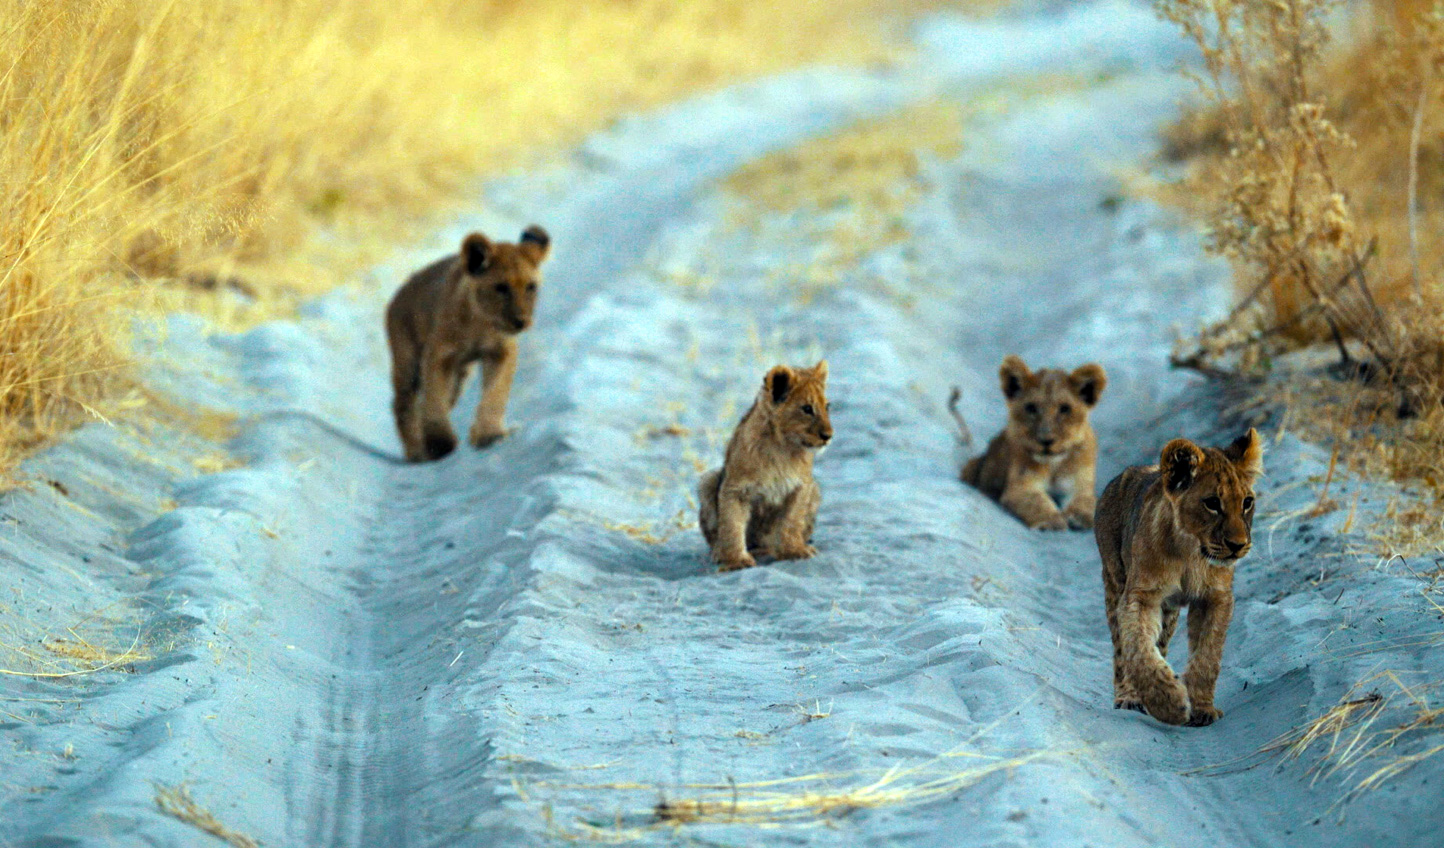 And see lovely little lion cubs